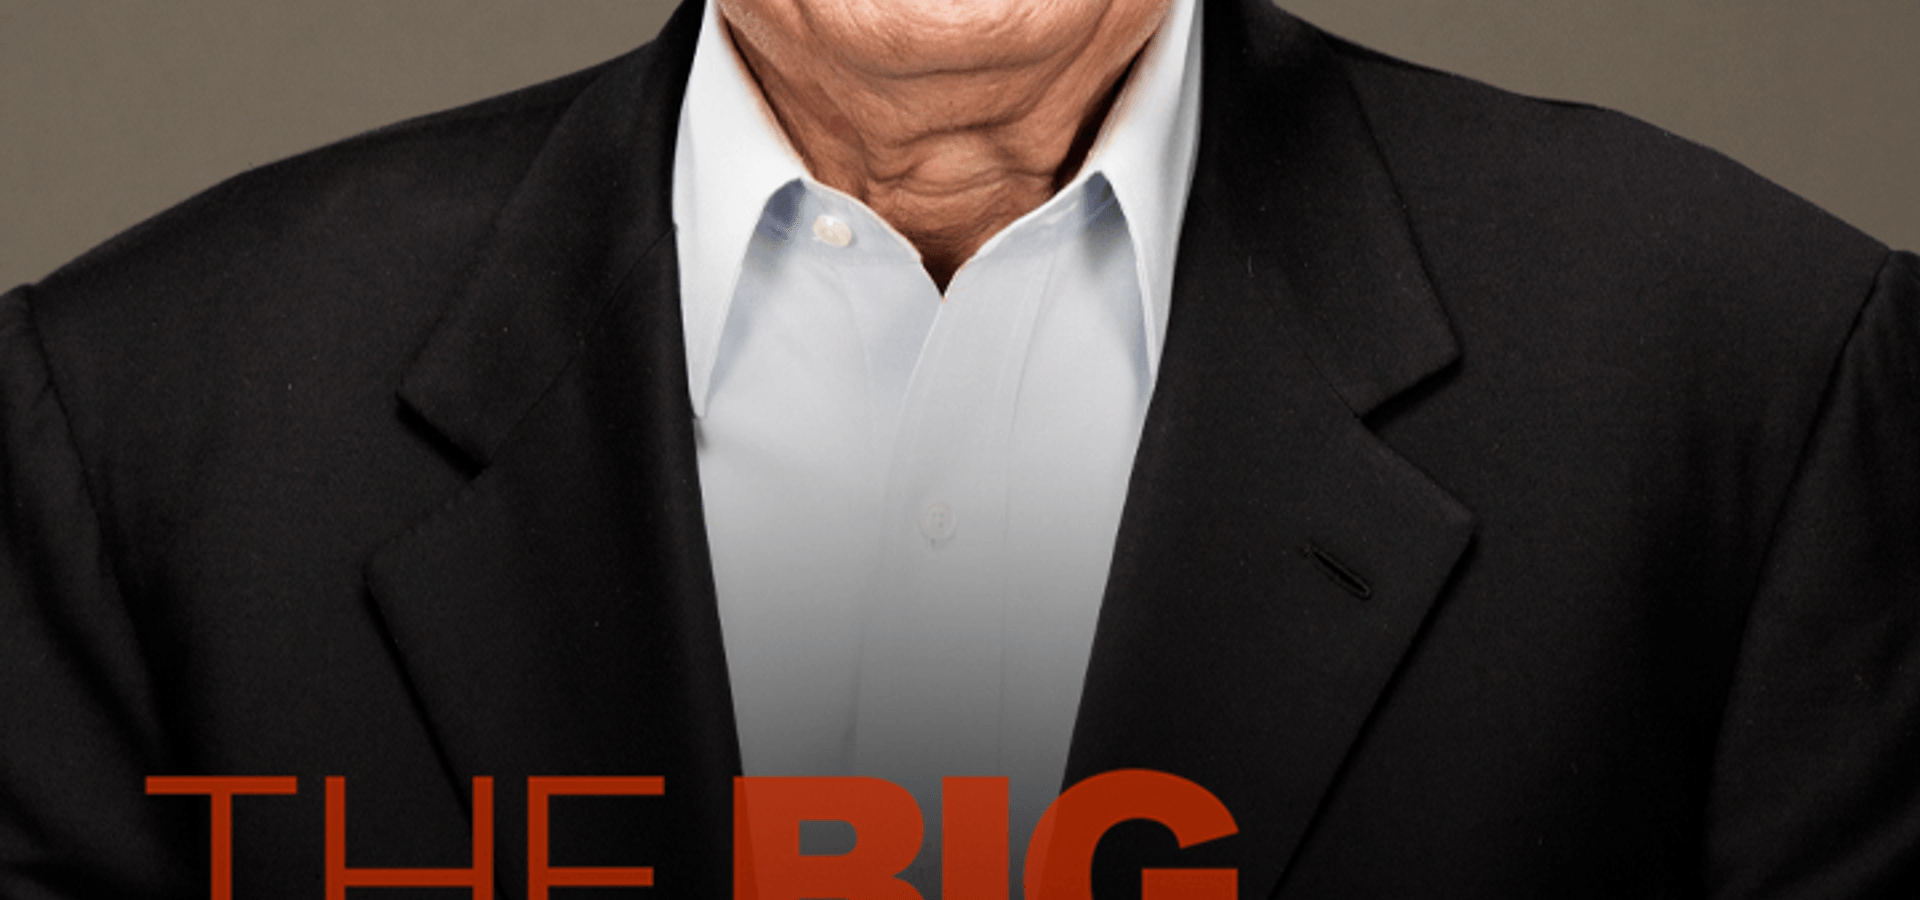 The Big Interview with Dan Rather Season 2